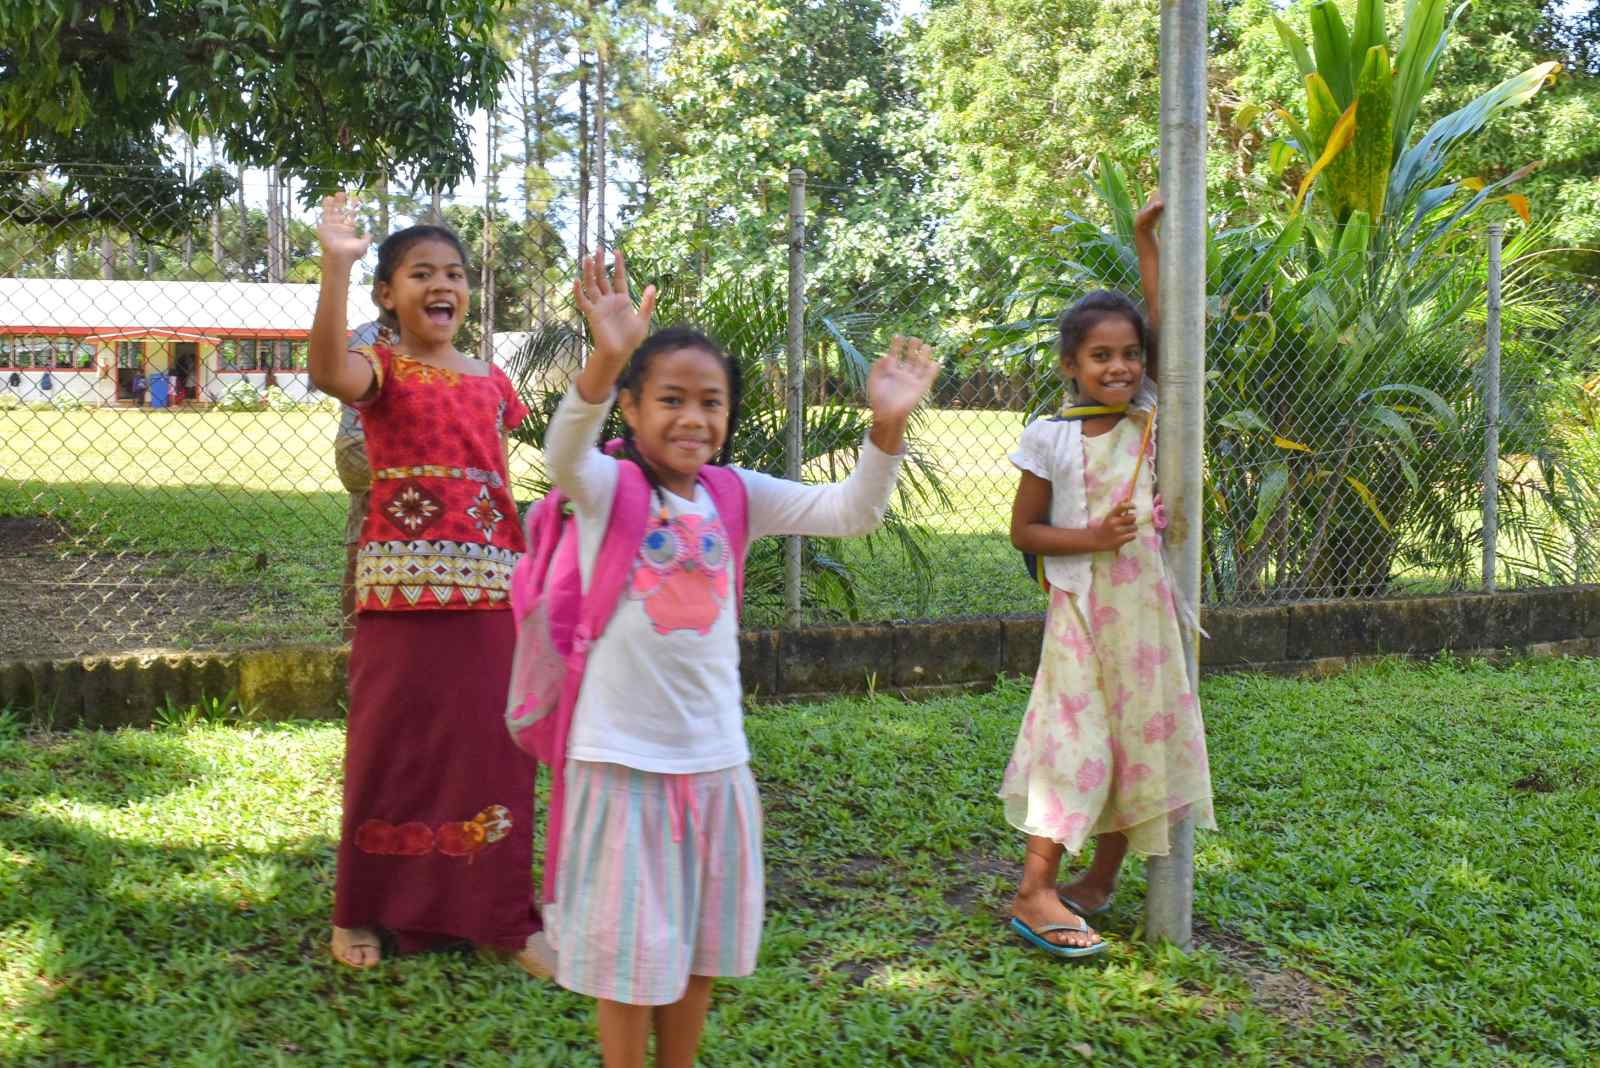 10 Things to Do in Nuku'alofa with Kids